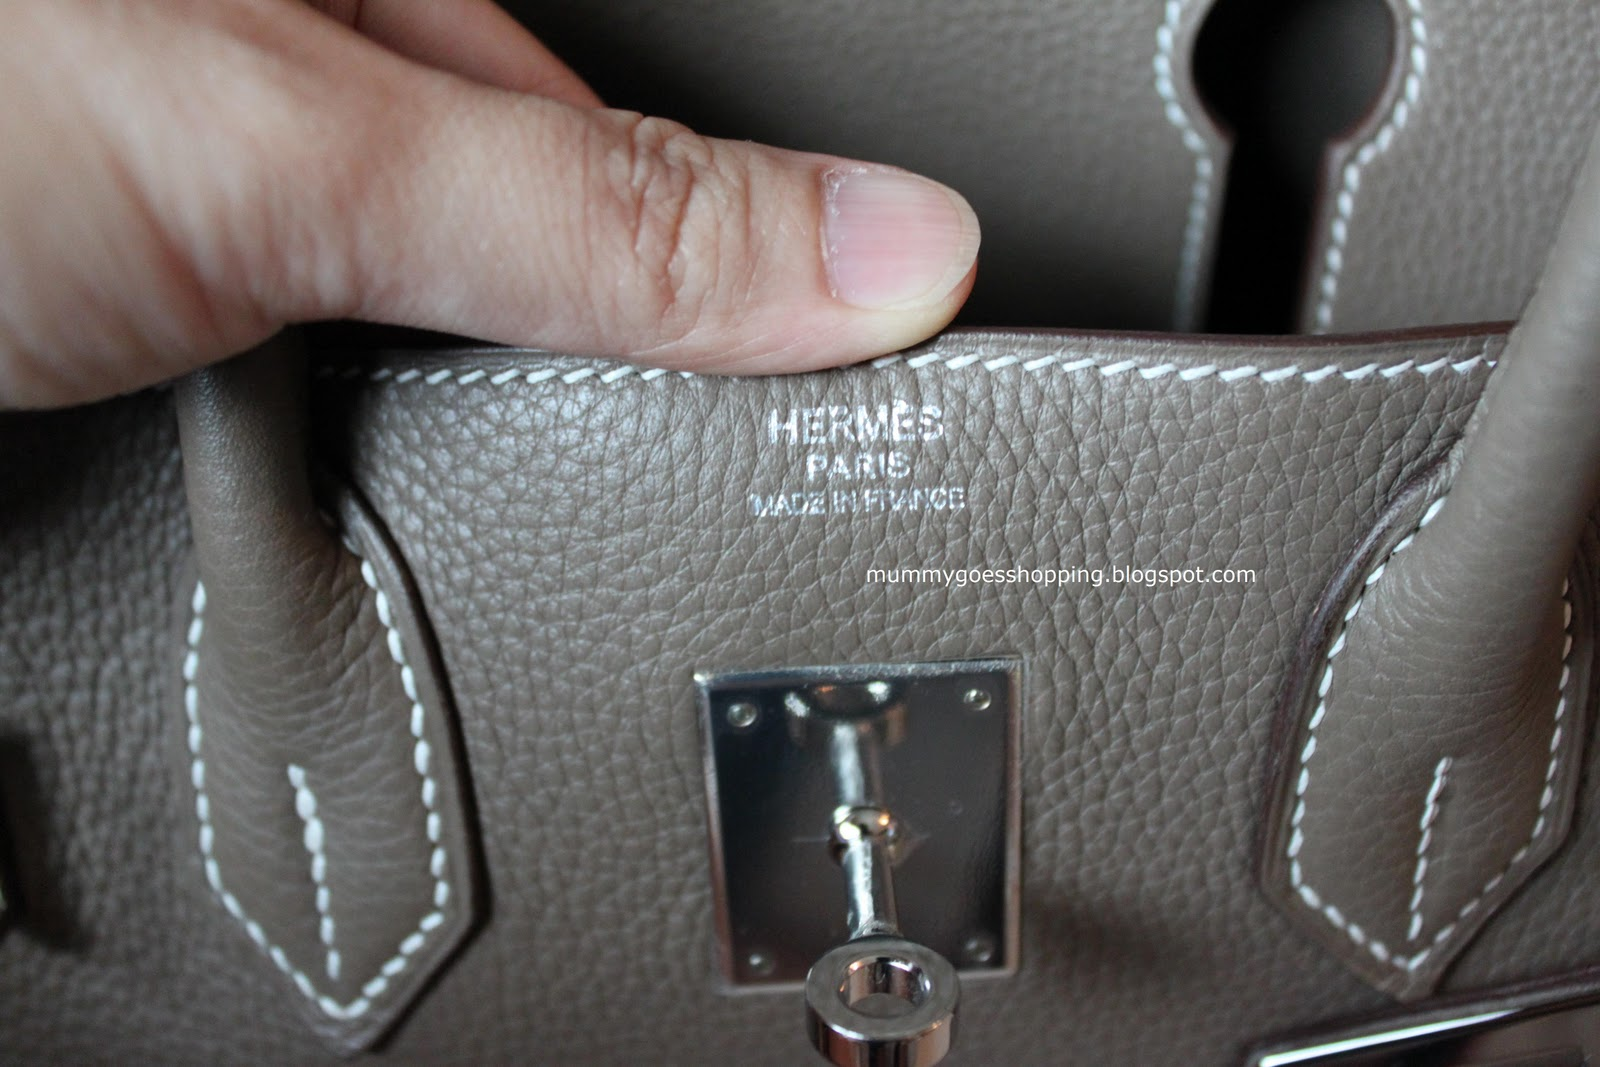 hermes replicas - SOLD! Hermes Birkin 30cm Etoupe Clemence with Palladium Hardware ...